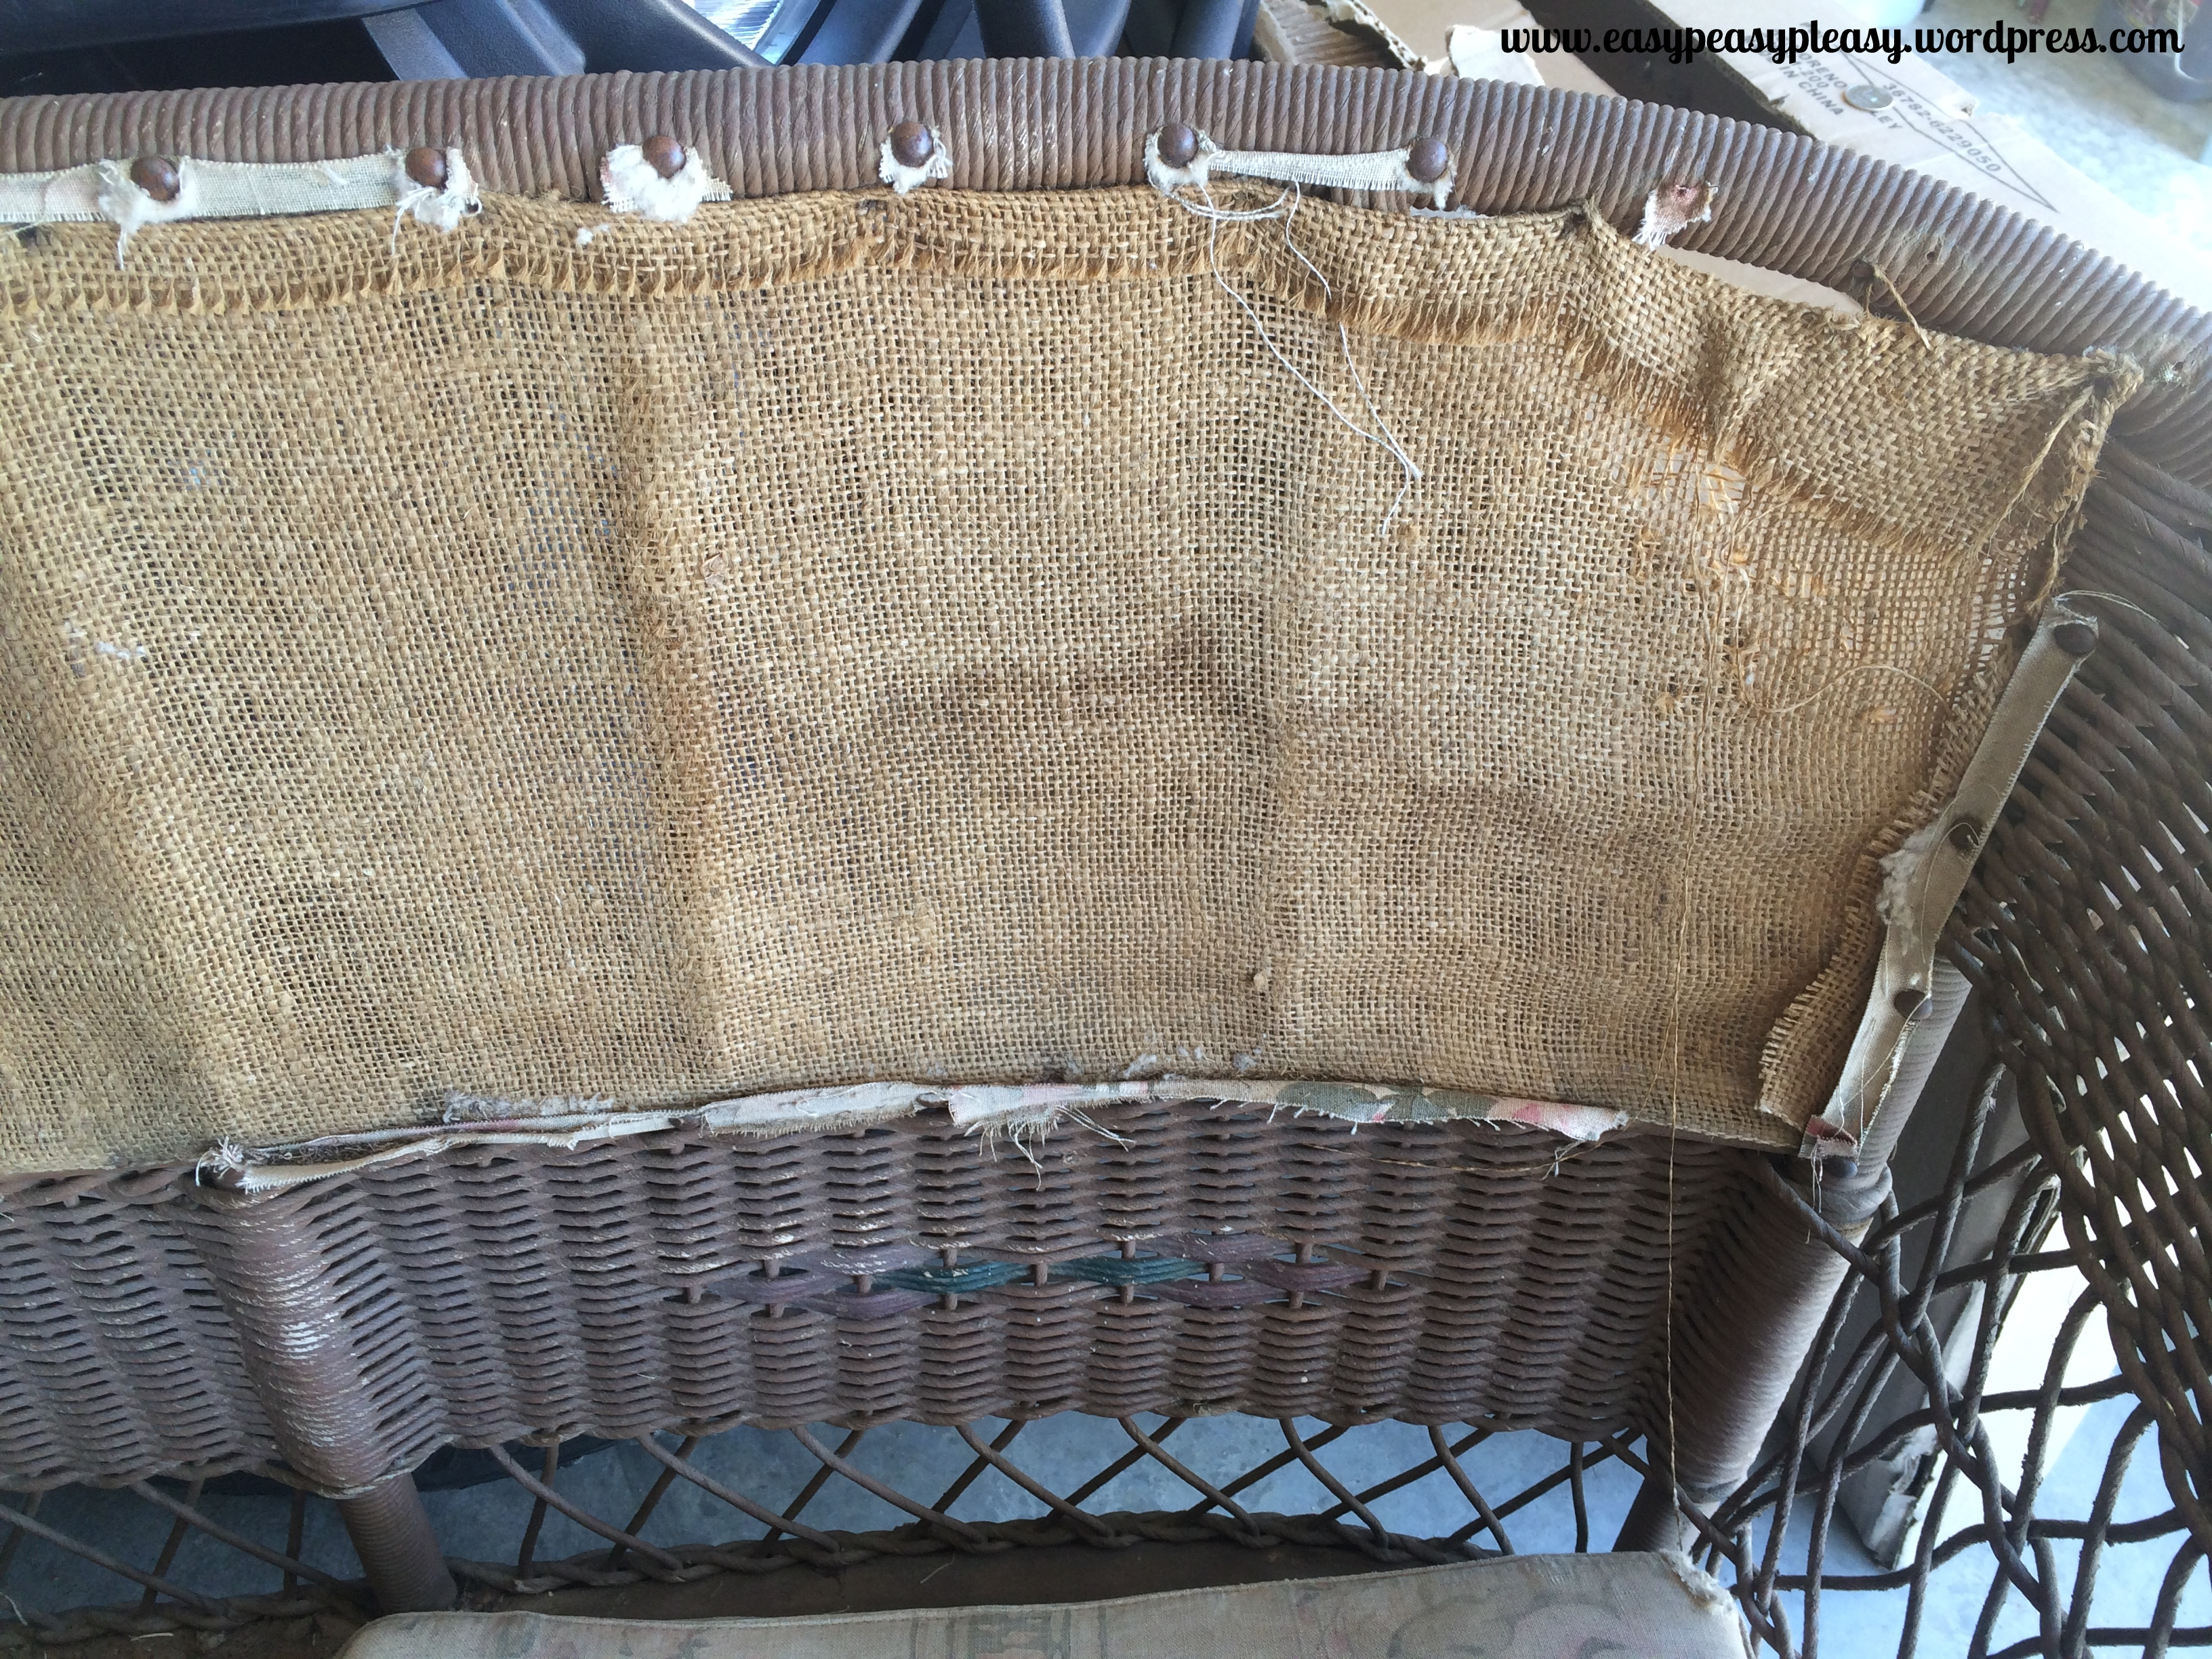 How to restore an old wicker Davenport